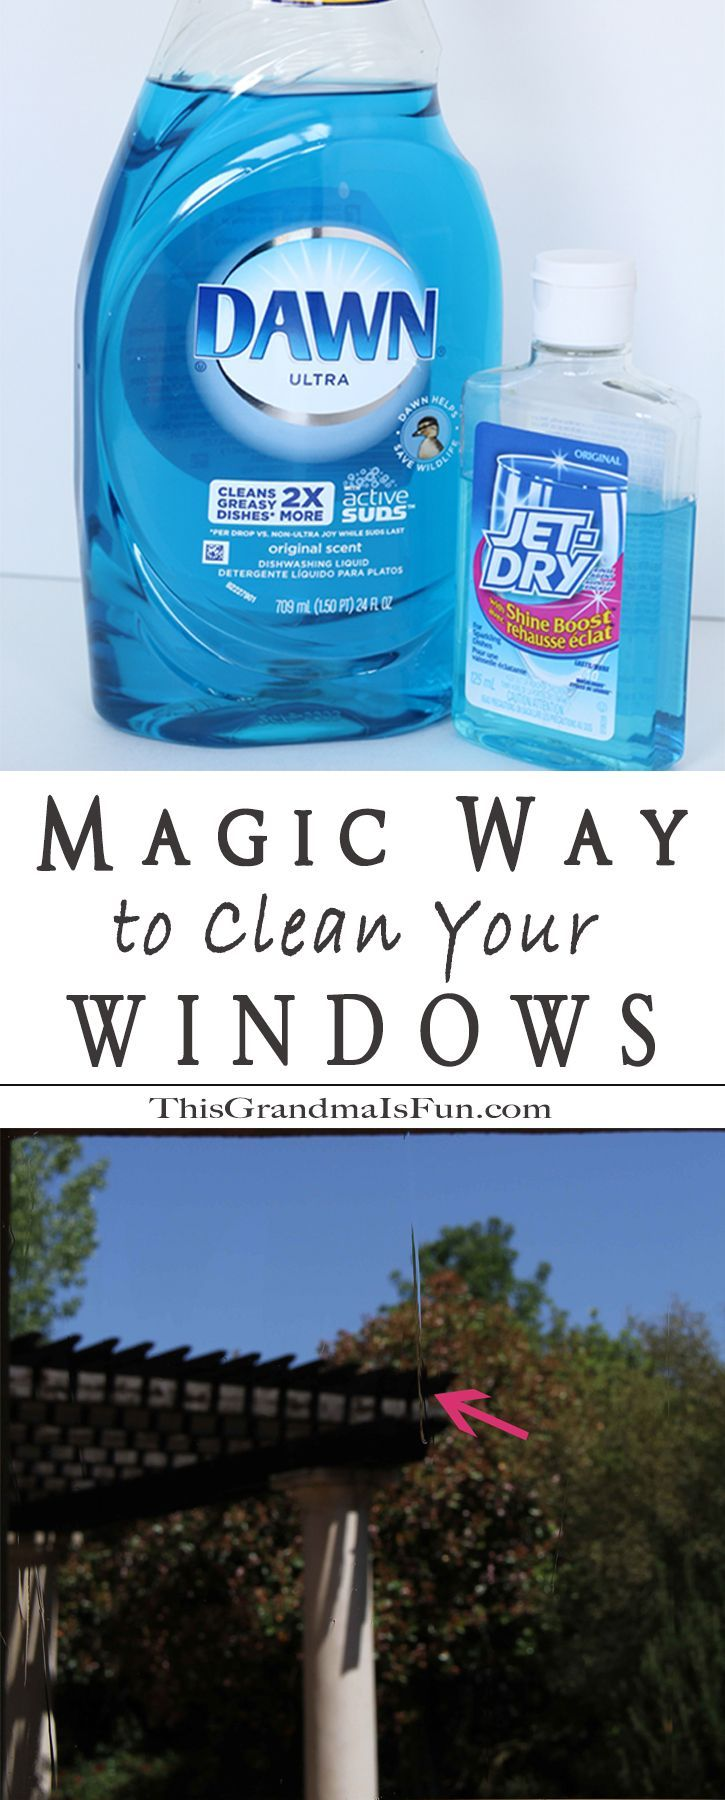 The magic way to clean your windows, does such a thing exist in the real world? Yes, it does, wands and magical training are not required. Dawn Dishwashing soap, Jet Dry, and some warm water are all you need. Before finding this magical cleaning method, I procrastinated washing my windows. Getting them clean took what felt like a herculean effort on my part. Now I can get one sliding glass door and eight full-length windows clean and streak free in ten minutes!